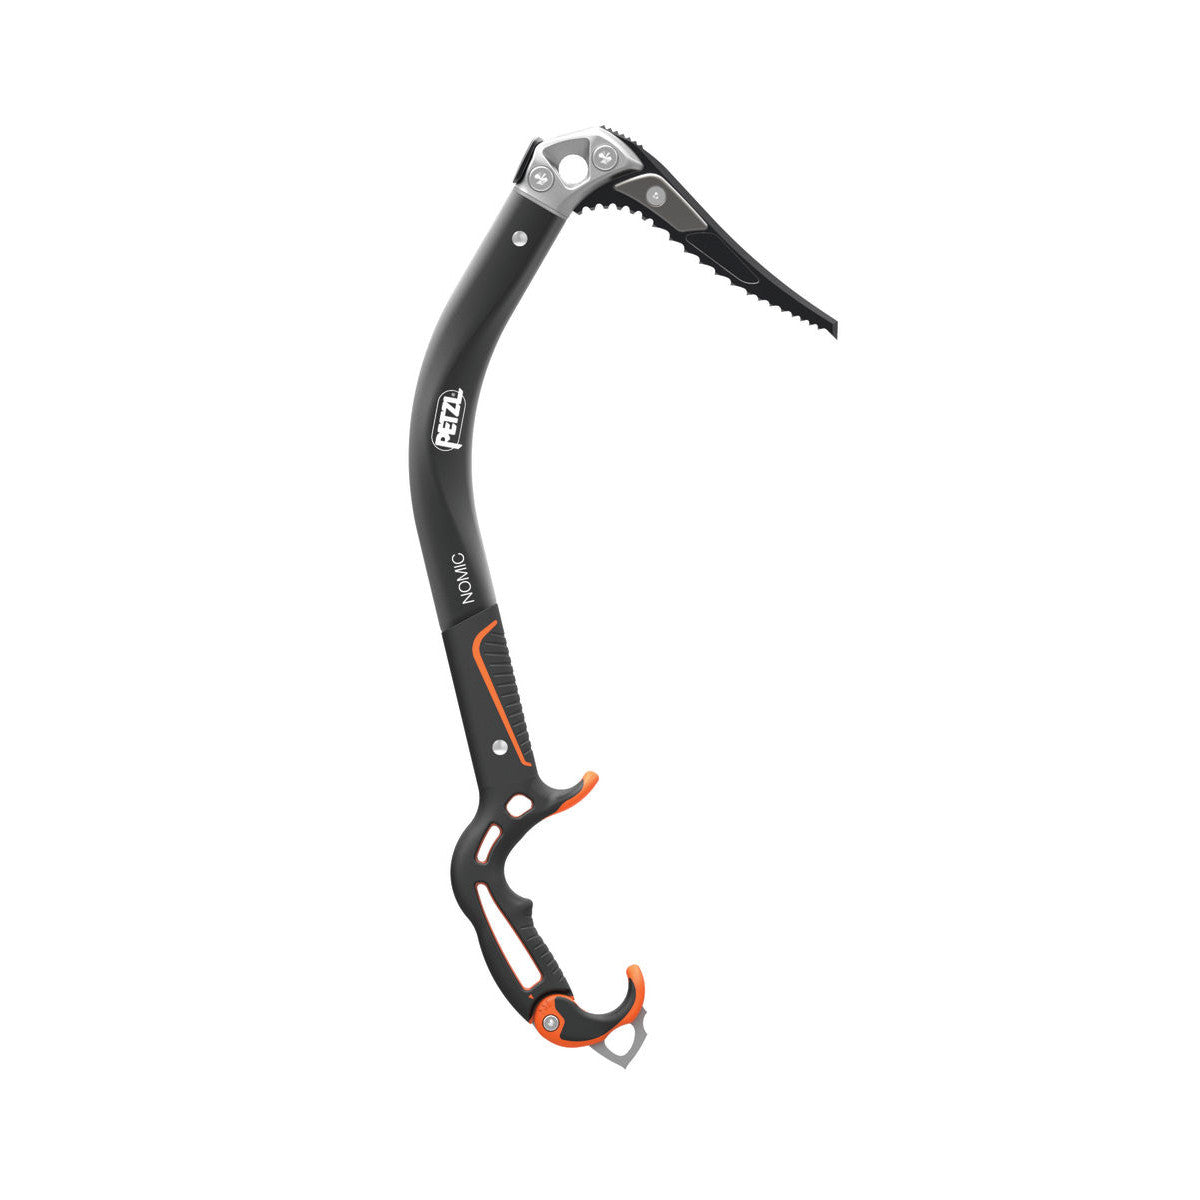 Petzl Nomic Ice Axe, side view shown with black handle, shaft and pick